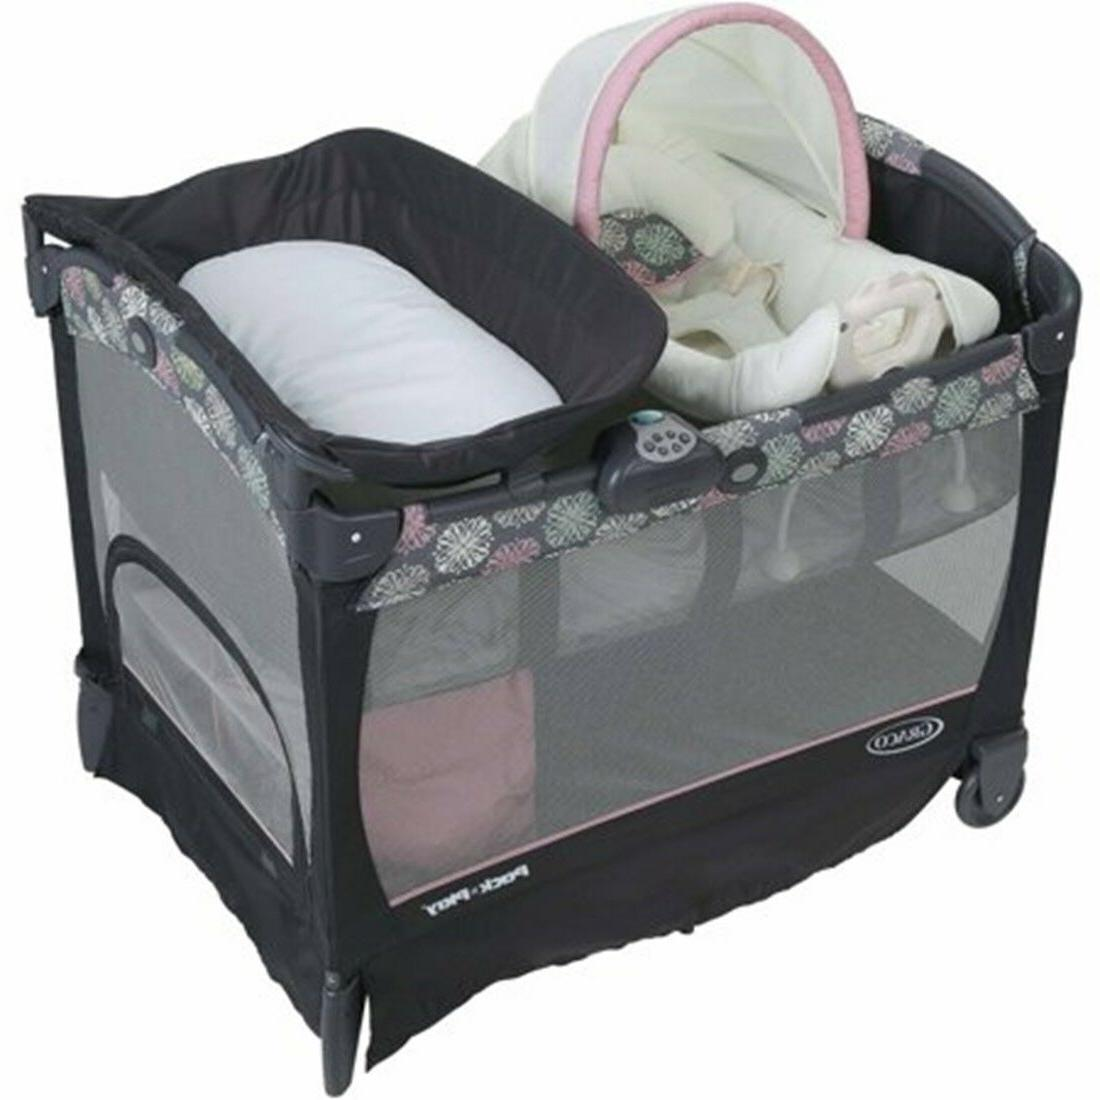 Baby Stroller System with Seat Fast Fold Crib